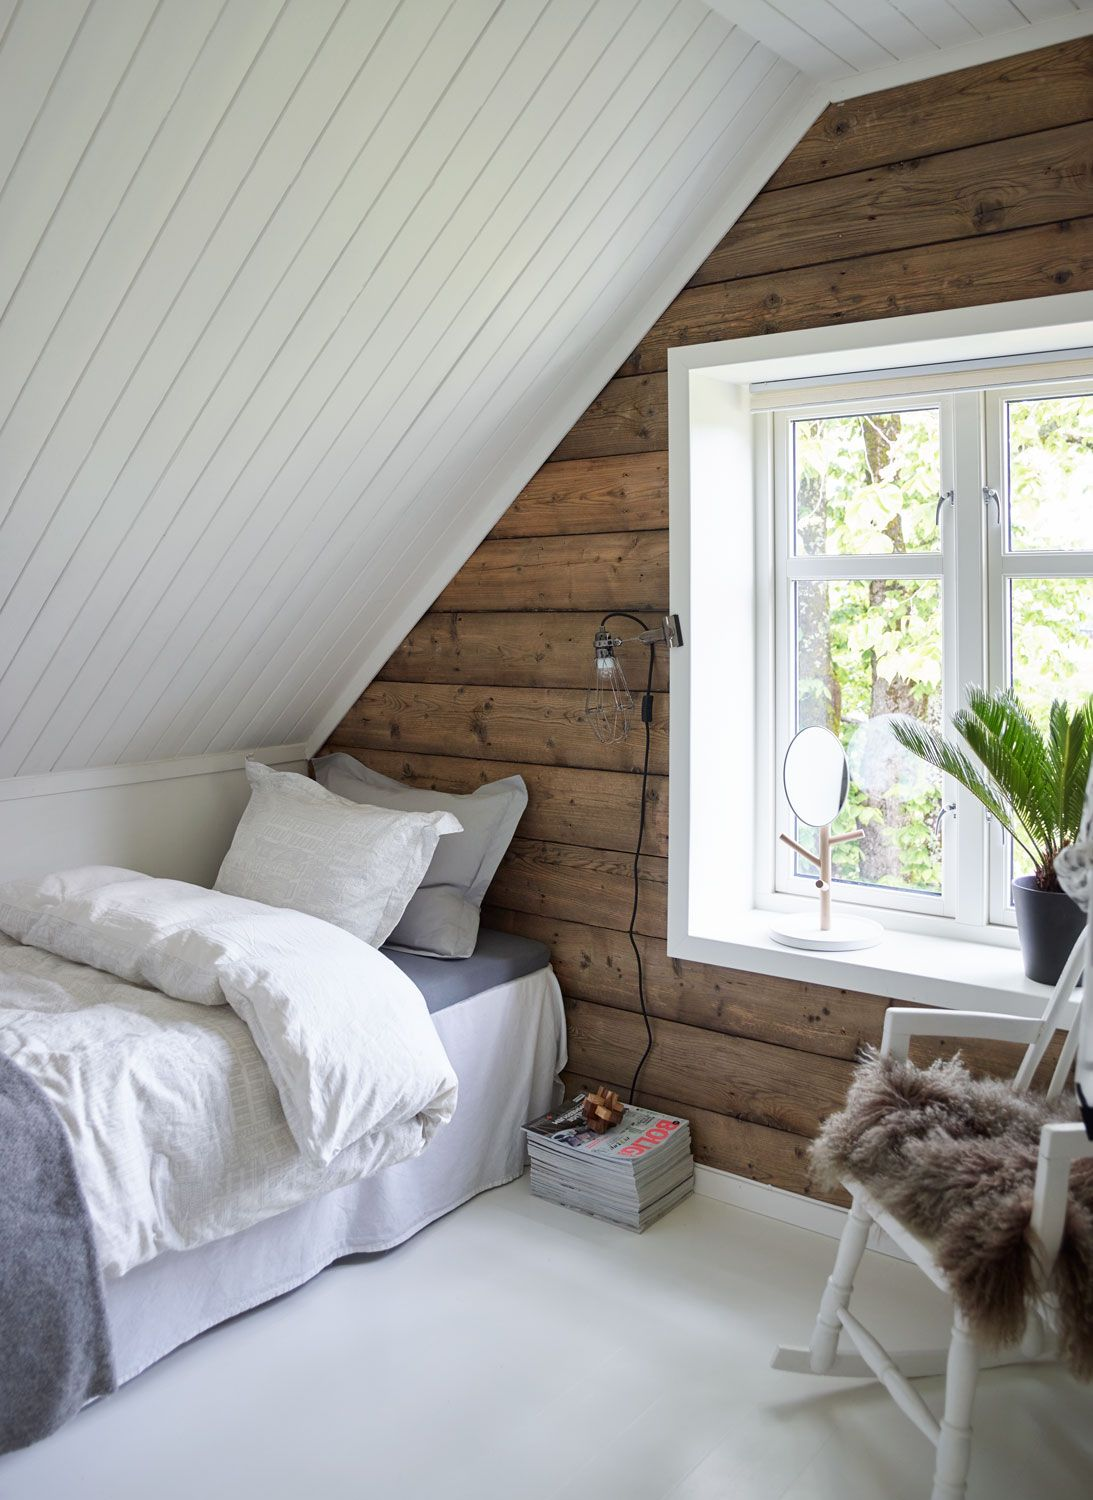 ideas for a small attic bedroom - Attic Bedroom Design and Décor Tips